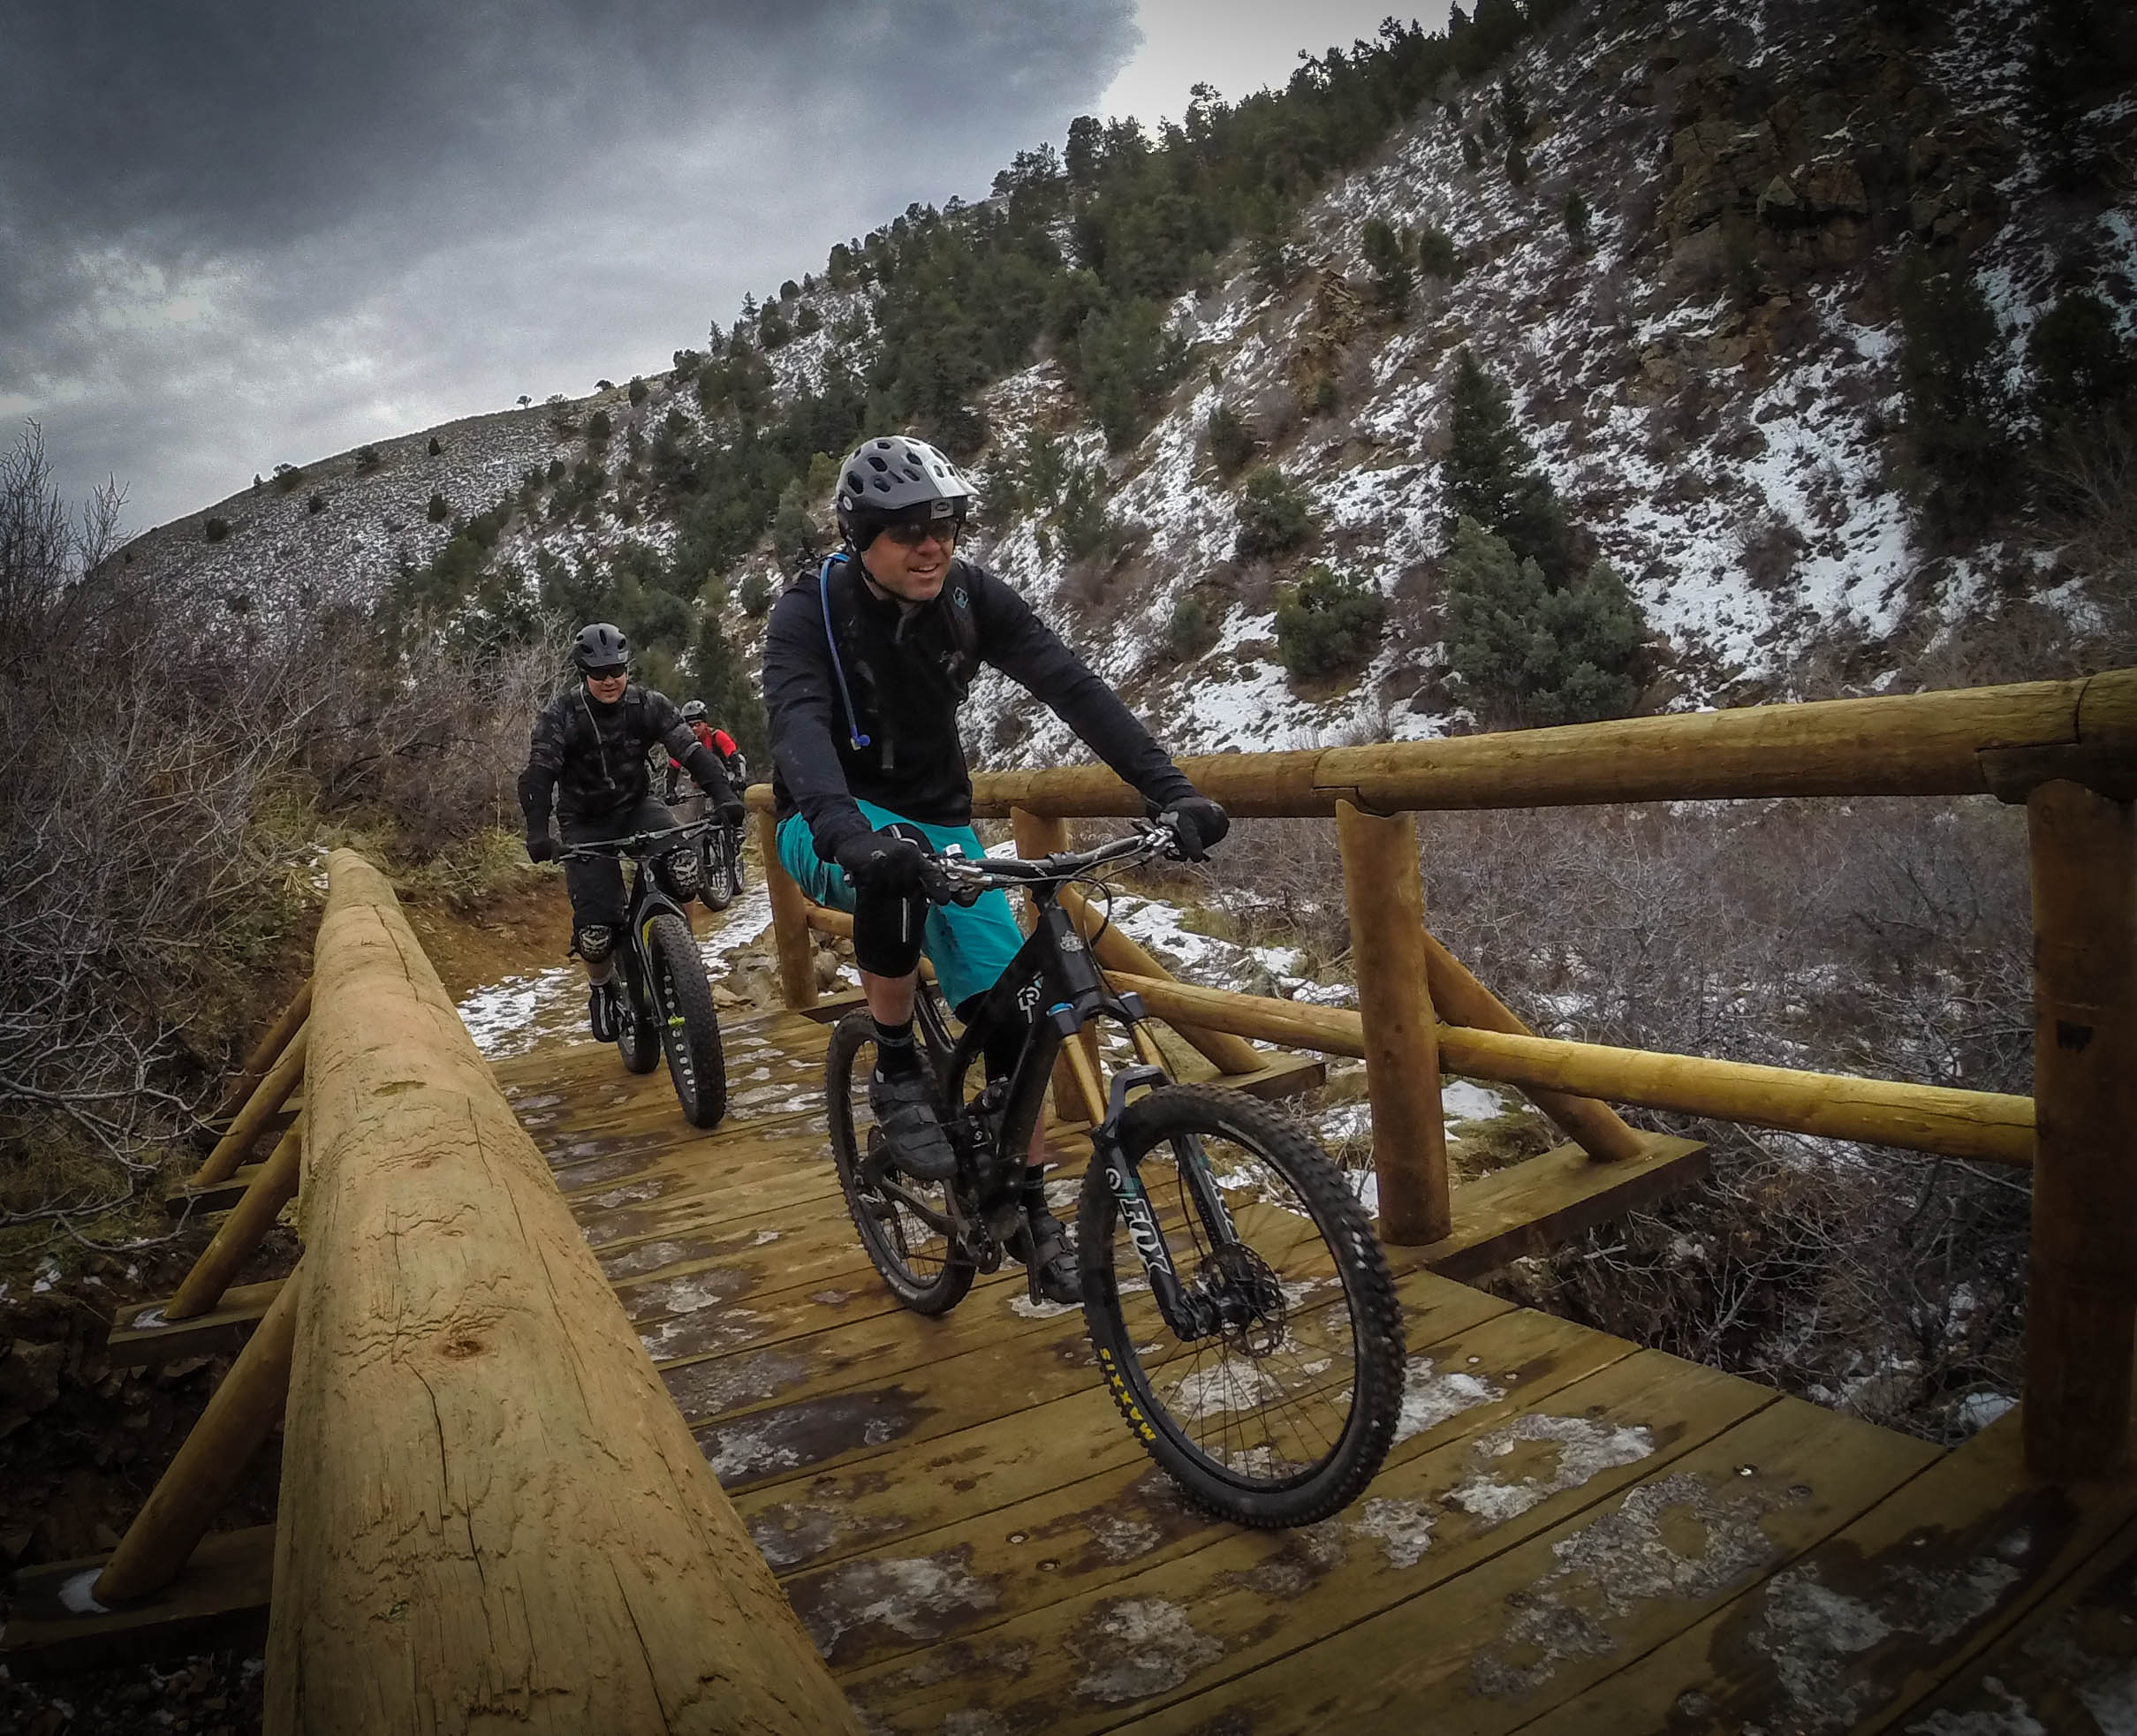 Mike H and myself ride one of the newly constructed bridges across an area of water drainage